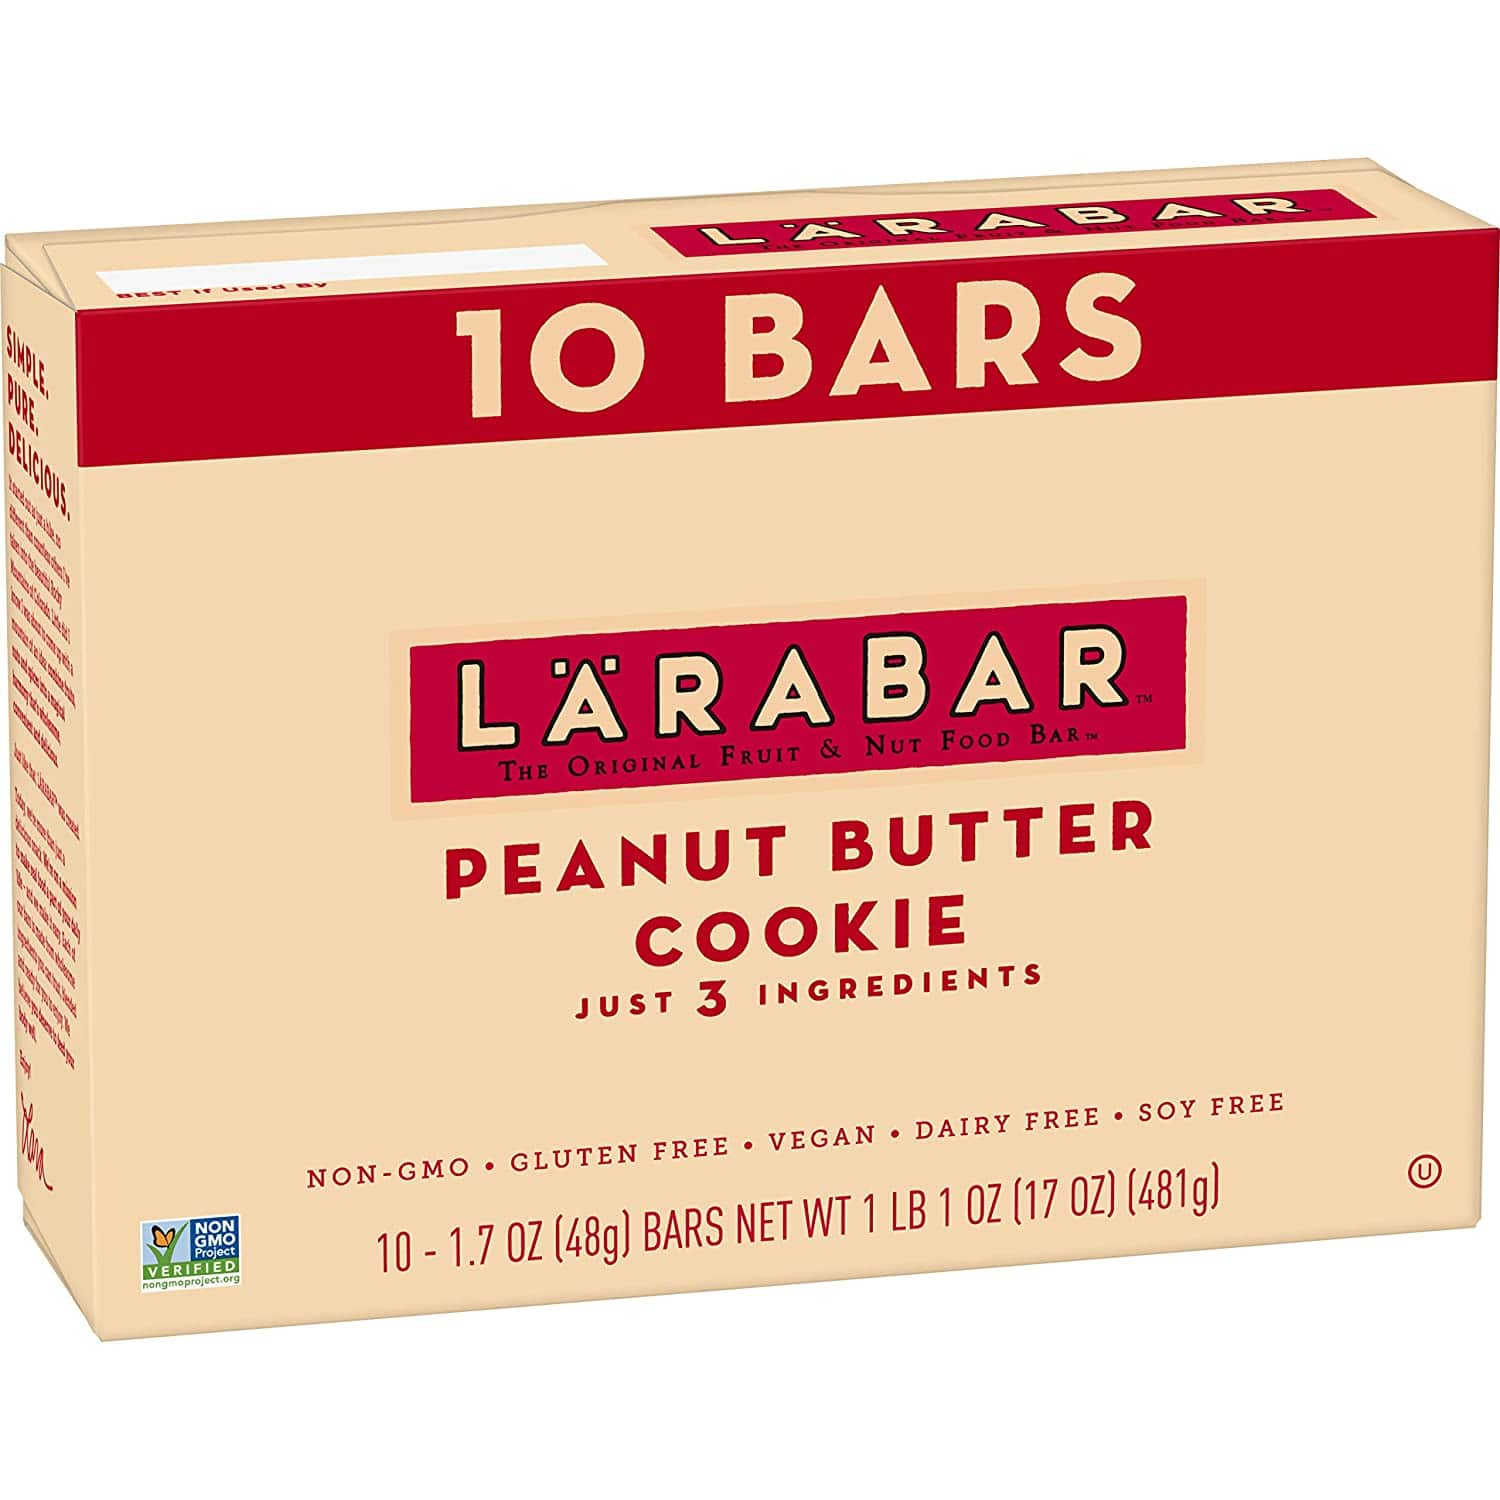 10-Count 1.7oz. Larabar Gluten Free Bar (Peanut Butter Cookie)